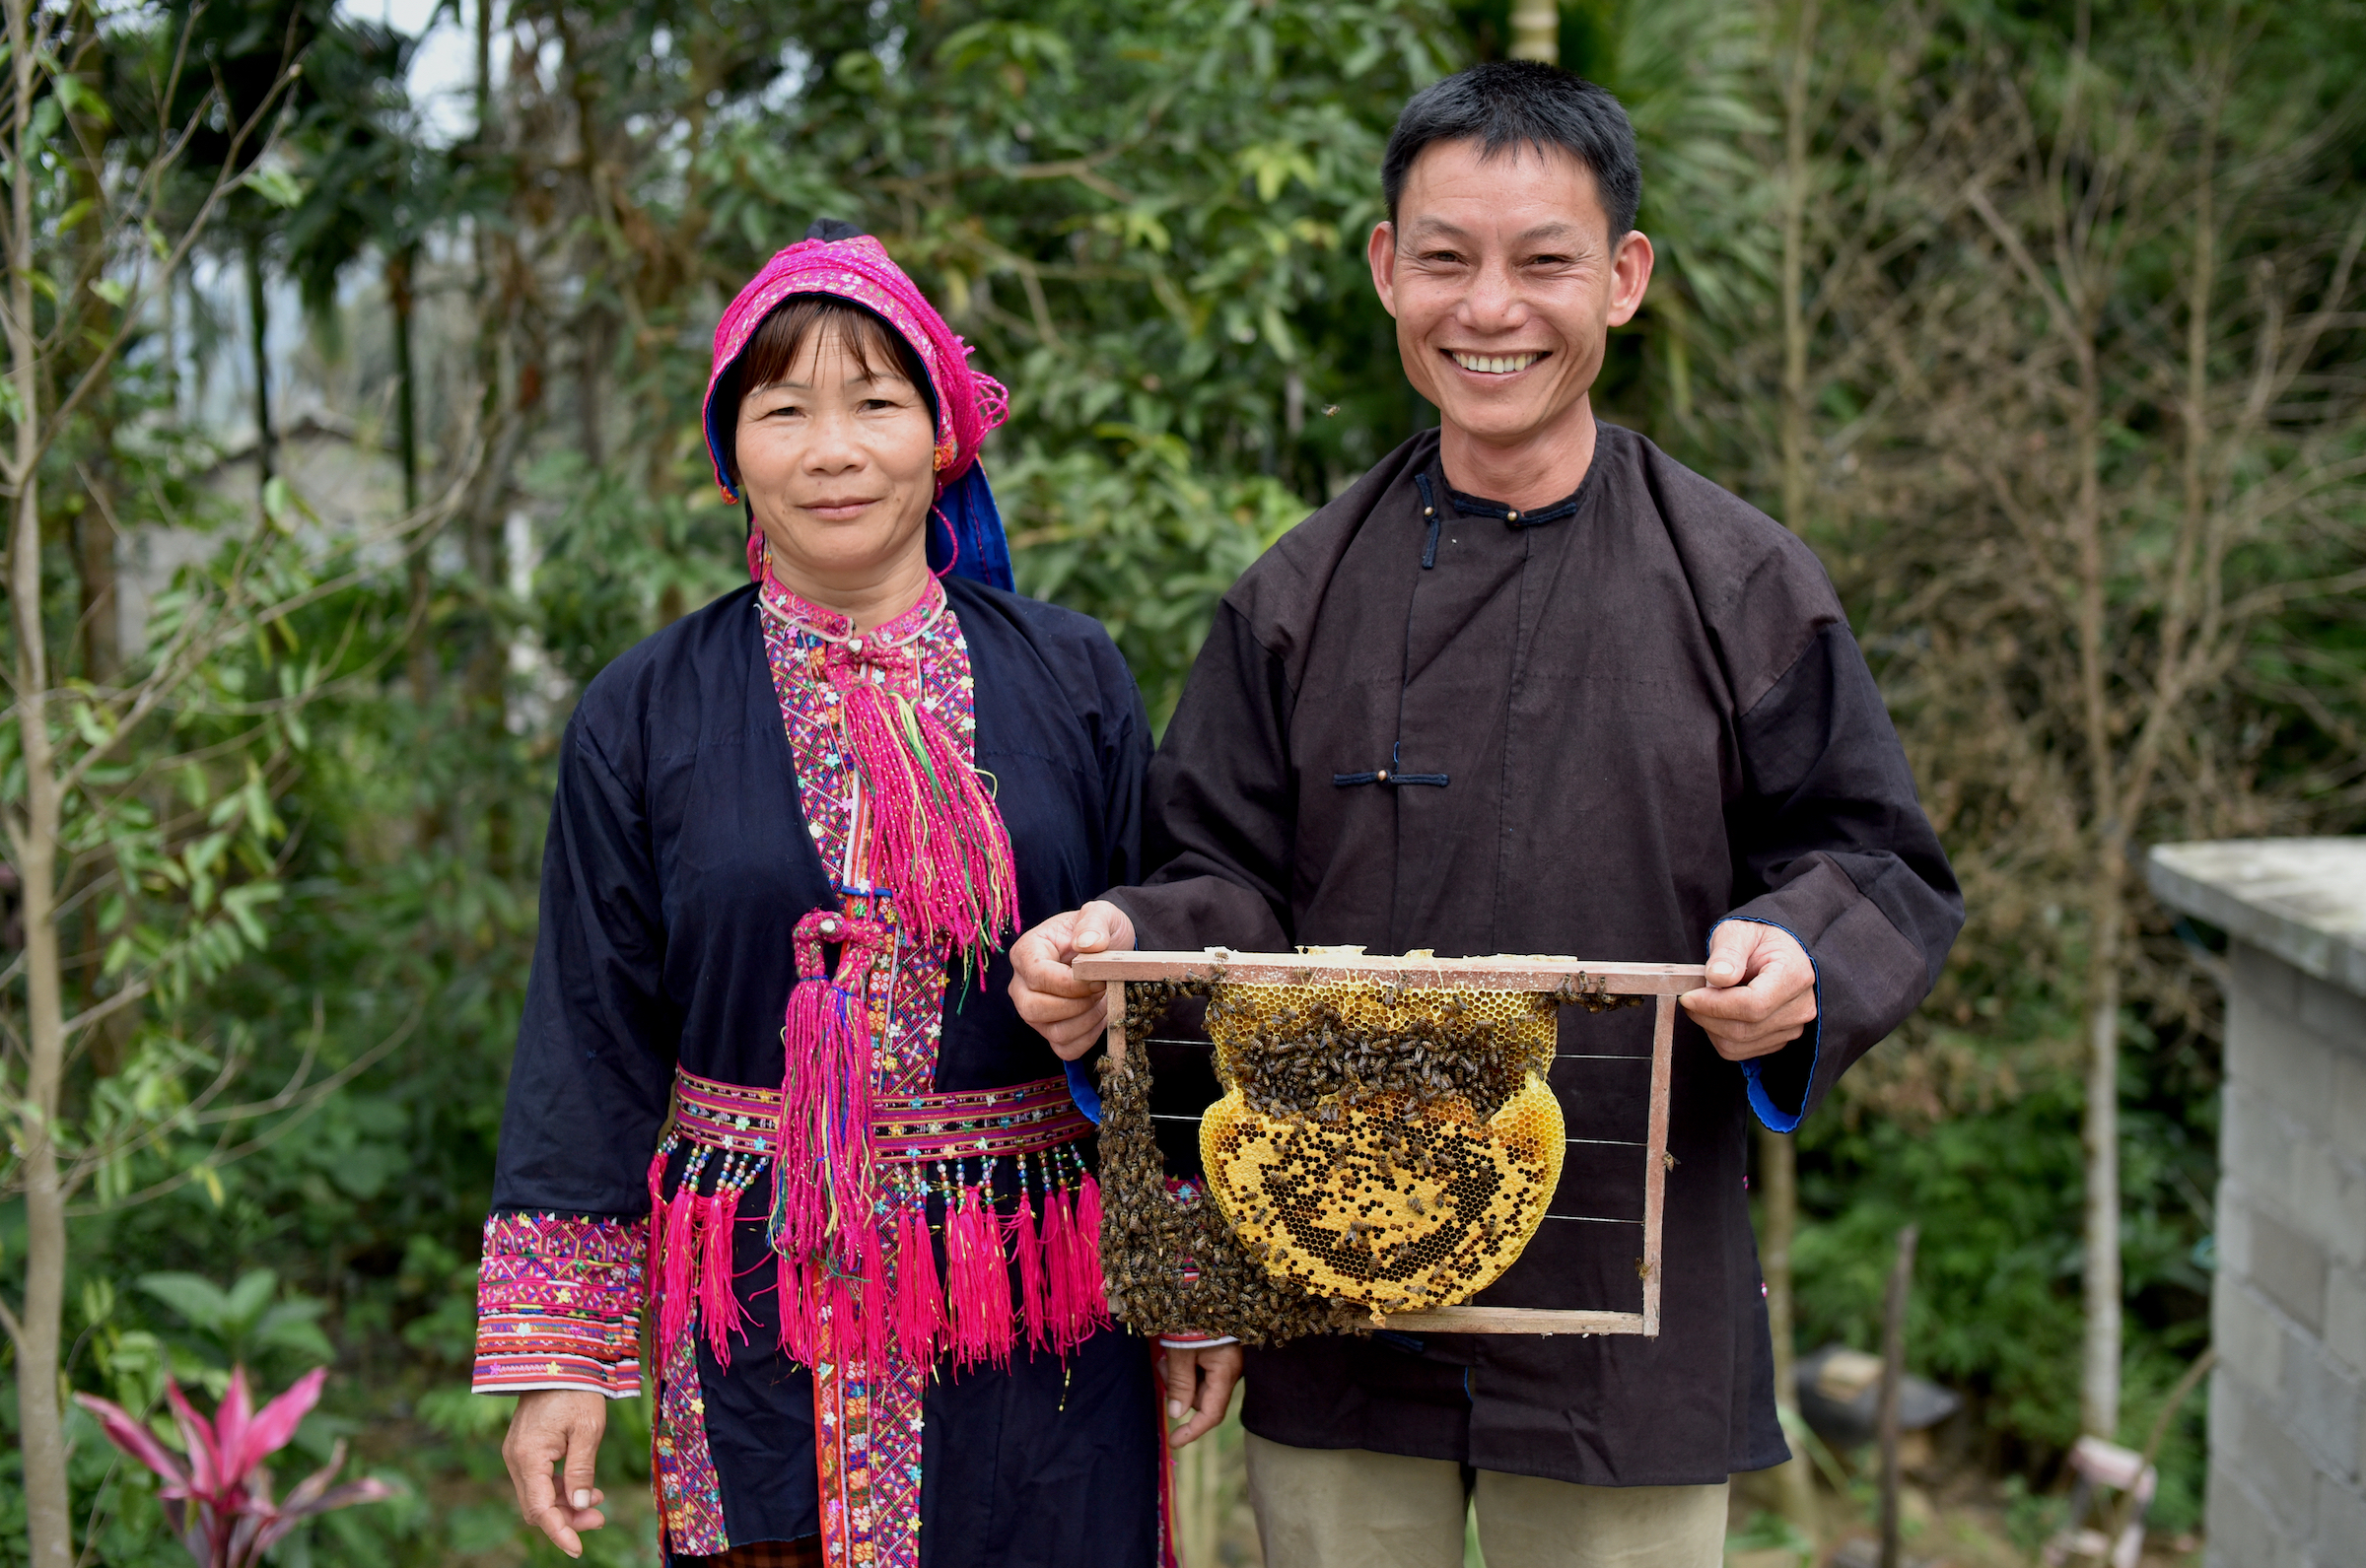 Li Wenyong and his wife Xiumei hold up a honeycomb from one of their hives. Conservationists hope that honey may provide a sustainable source of income for people in Hainan. Photograph courtesy of Kadoorie Farm & Botanic Garden